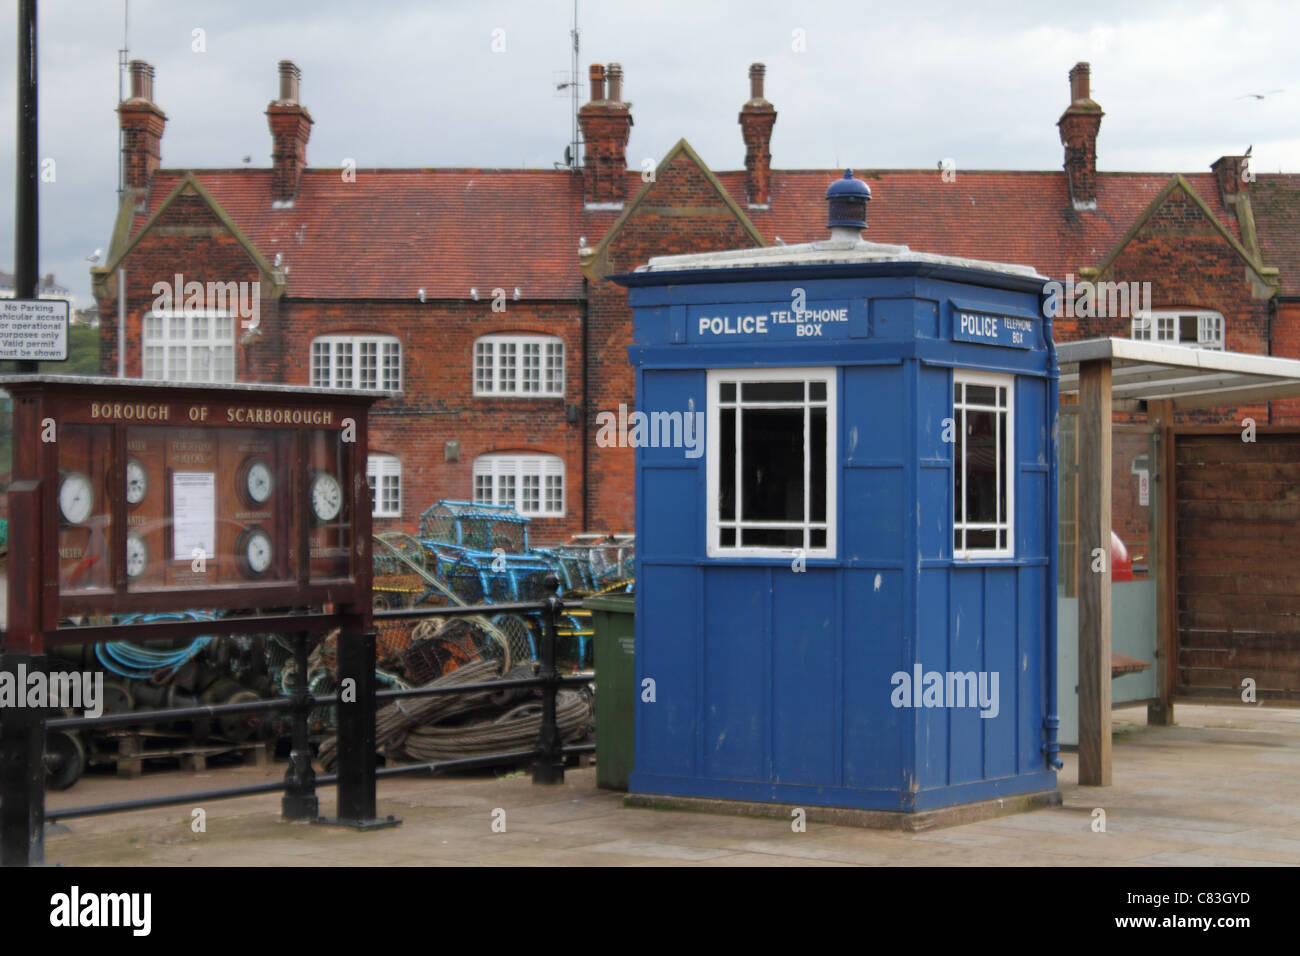 police telephone box tardis blue - Stock Image